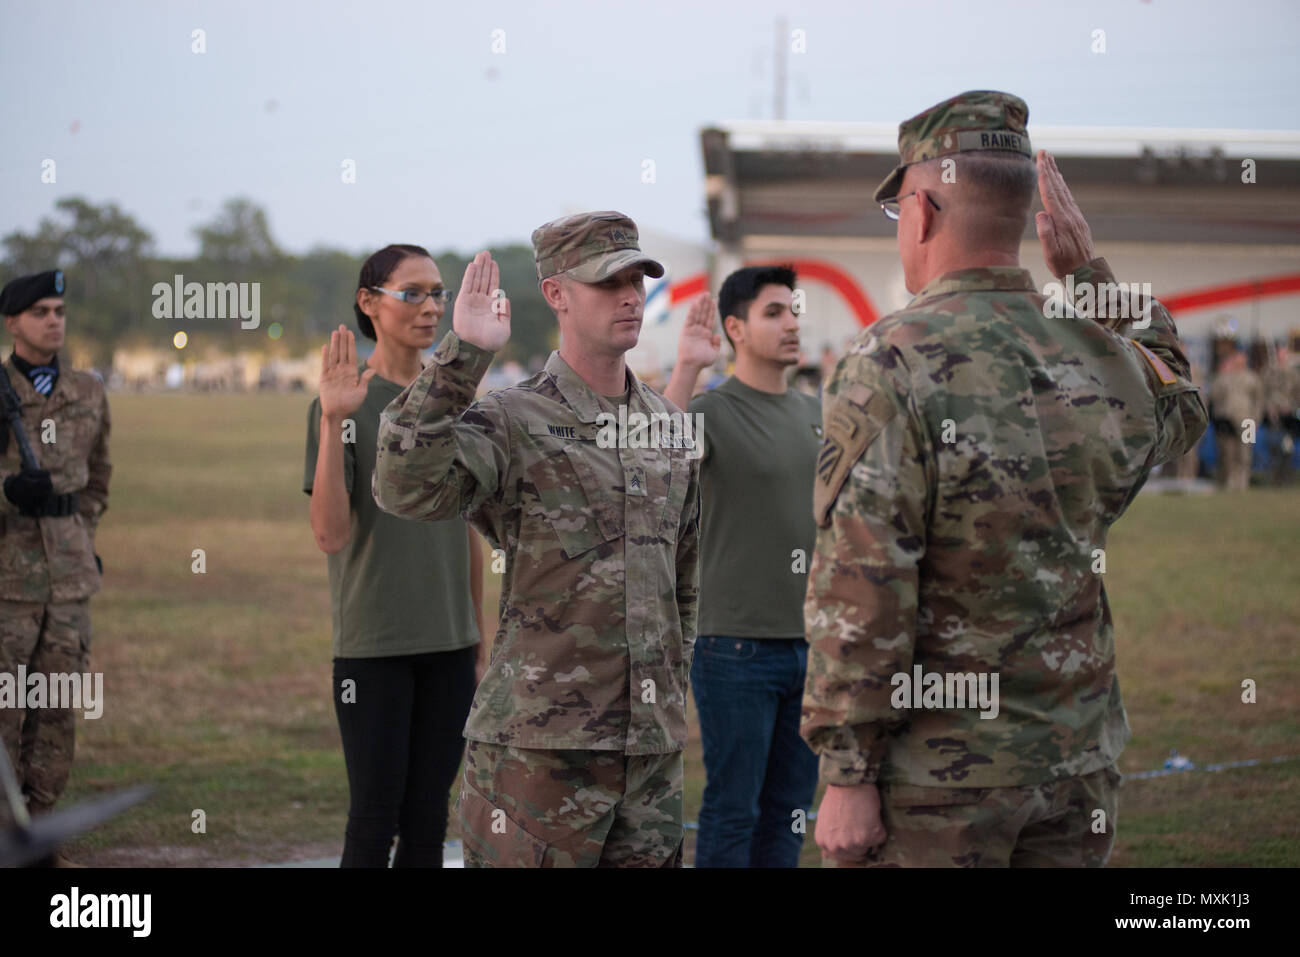 Maj. Gen. Jim Rainey, commanding general of 3rd Infantry Division reenists soldiers assigned to Fort Stewart during Twilight Tattoo Nov. 15, 2016. Twilight Tattoo is a ceremony honoring veterans and family members. (Photo by LTC Brian J. Fickel) Stock Photo